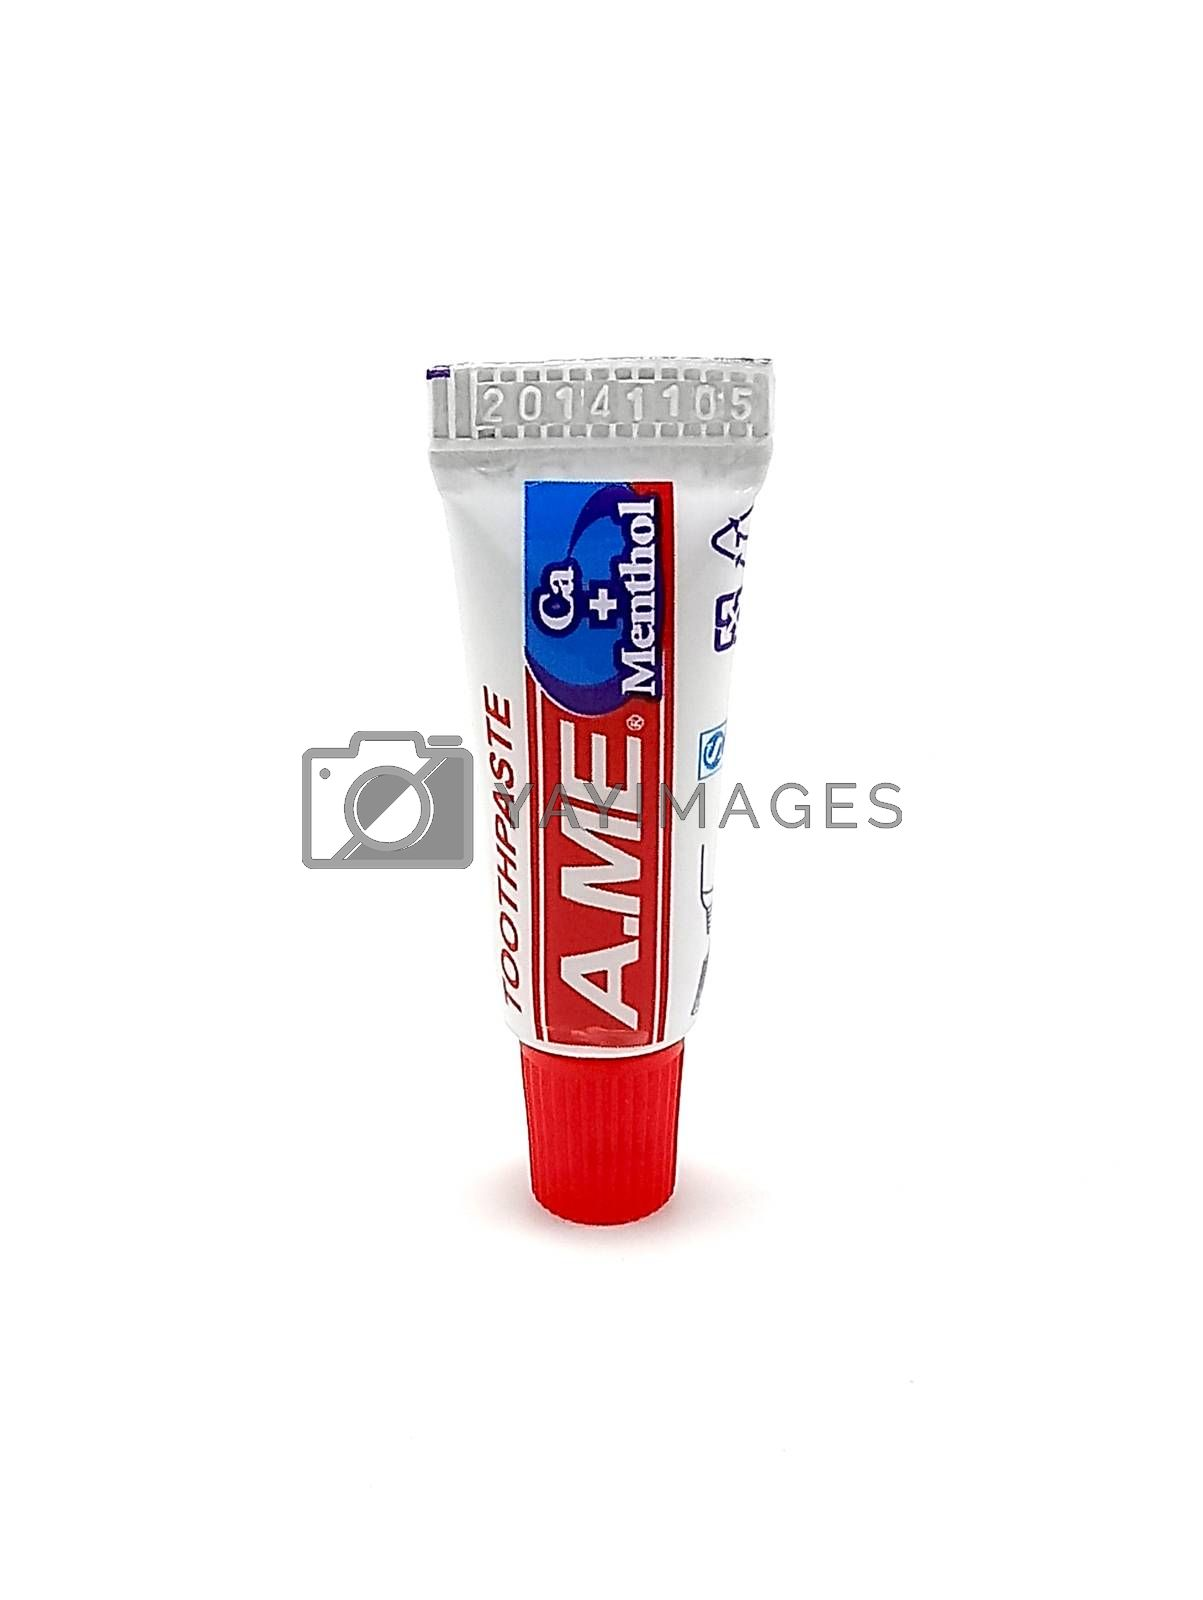 Ame toothpaste tube in Manila, Philippines by imwaltersy